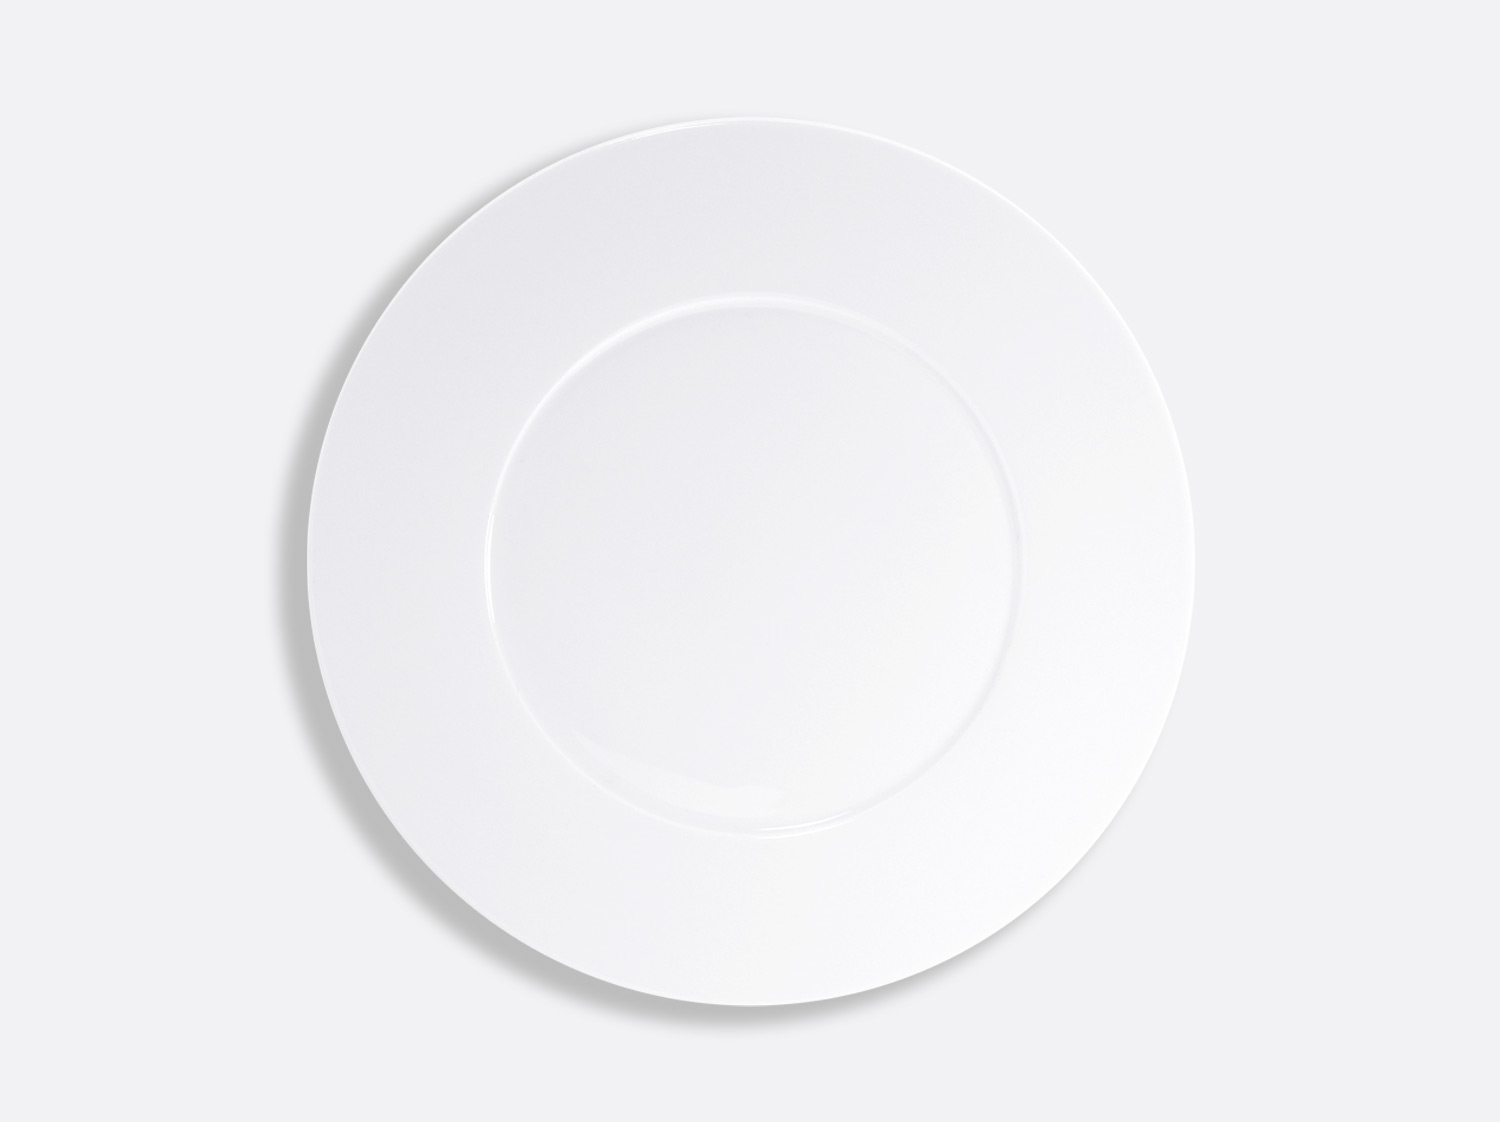 Assiette plate 27 cm en porcelaine de la collection ASTRE BLANC Bernardaud